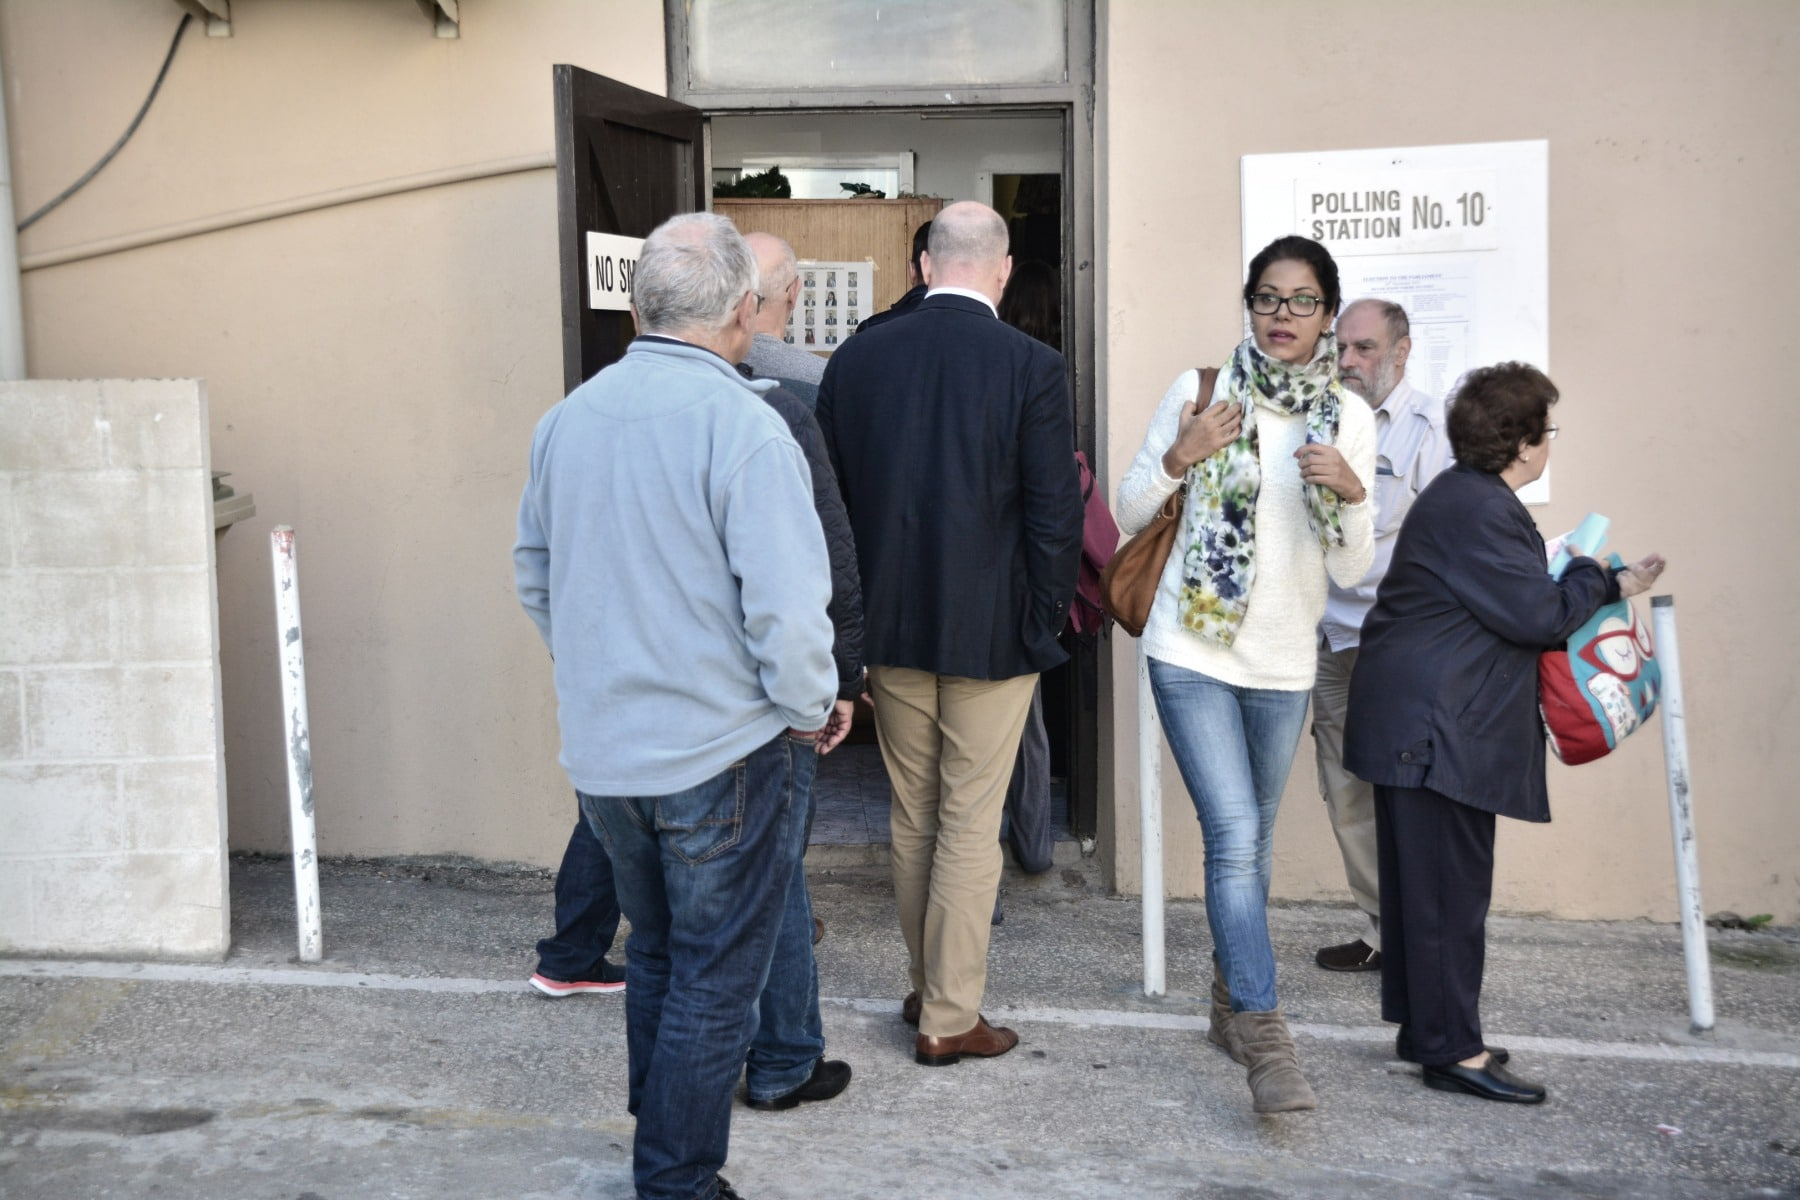 "Gibraltar - 26th November 2015 - (Commissioner of police at Town Range Polling Station as he oversees security) Police were today requested to make their presence known at the polling station by Line Wall Road after GSD activists handing leaflets outside the polling station are alleged to have made complaints over the use of the language used by a GSLP/Liberal activist handing leaflets to voters of Moroccan origins.According to reports received by Core Photography the GSD activists complained that the use of the native Moroccan language should not be allowed by those guiding voters outside the polling station, claiming the ""official language in Gibraltar is English,"" according to witnesses present during the incident. This resulted in tensions between the activists. Police were present to calm down the situation which has been played down as a minor incident. Executive members of the GSD approached over the incident have indicated that they were not at the time aware of such an incident, but have indicated that they would not support such actions and would be looking into the matter.No further known incidents have been reported throughout the day.Voting has been steady throughout the day, with politicians attending the polling stations throughout the morning as voters queue up to vote.The Commissioner of Police has attended polling stations to oversee security in person."